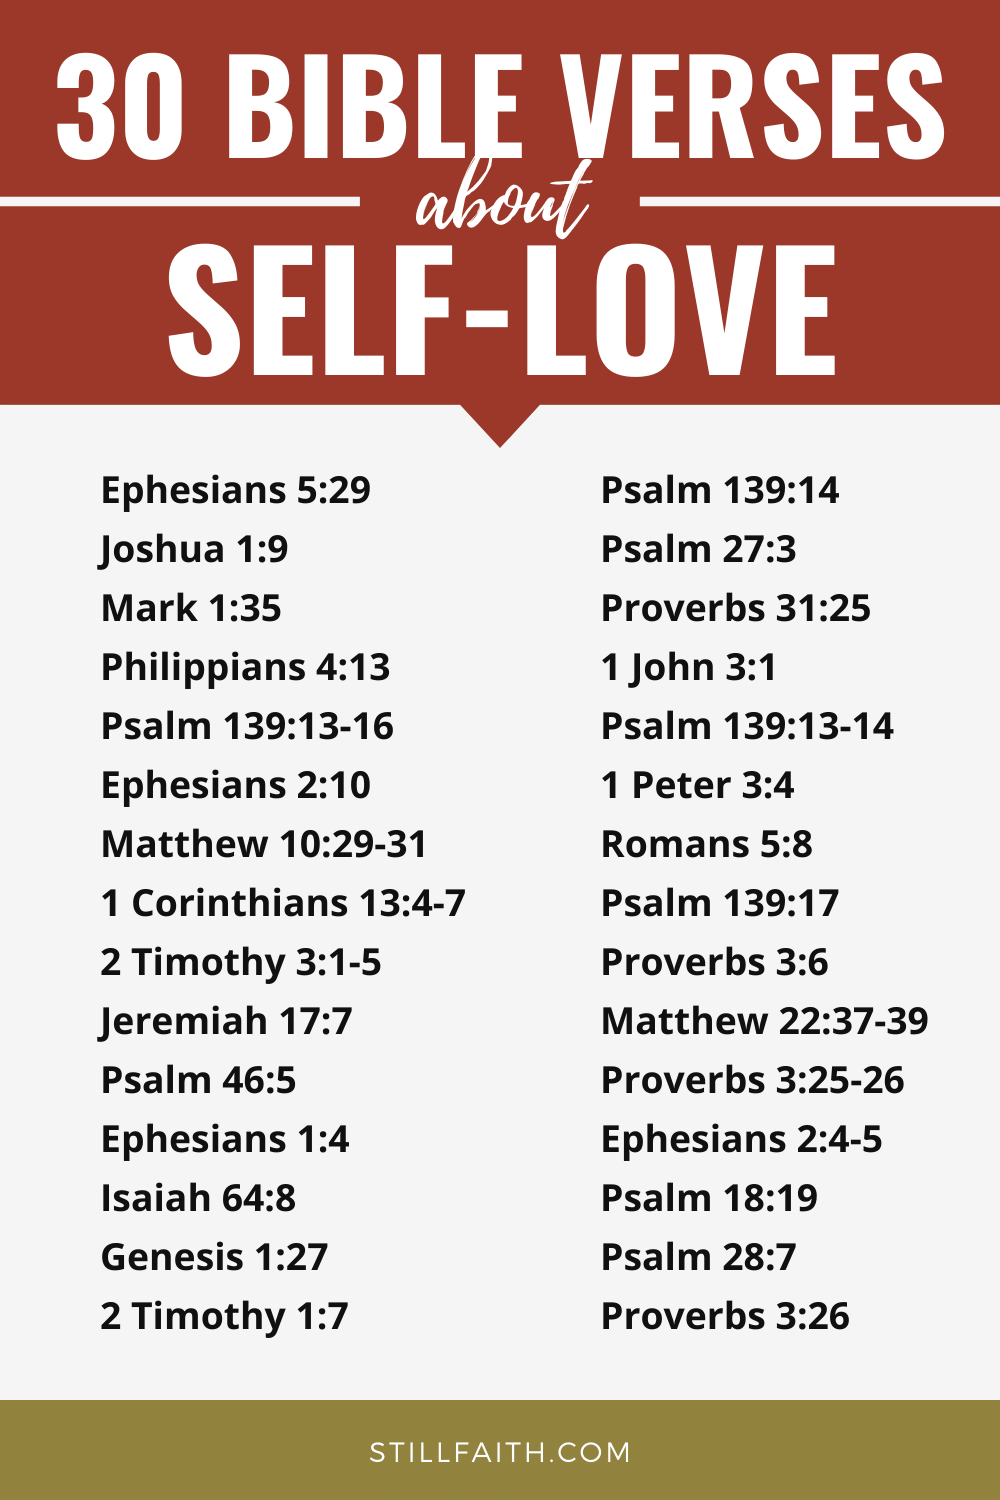 171 Bible Verses about Self-Love